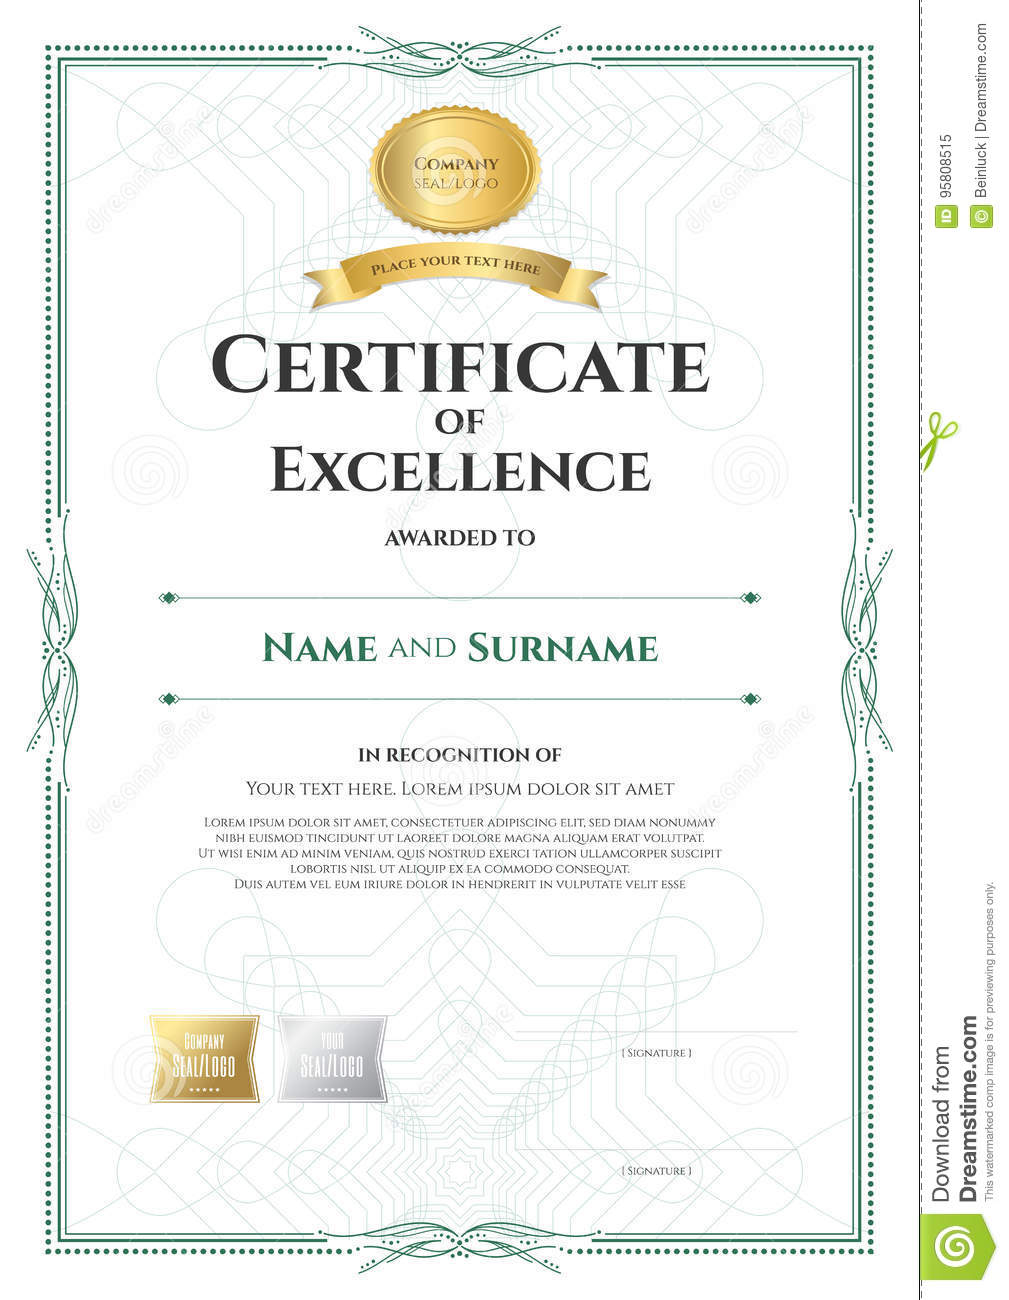 Portrait Certificate Of Excellence Template With Award ...